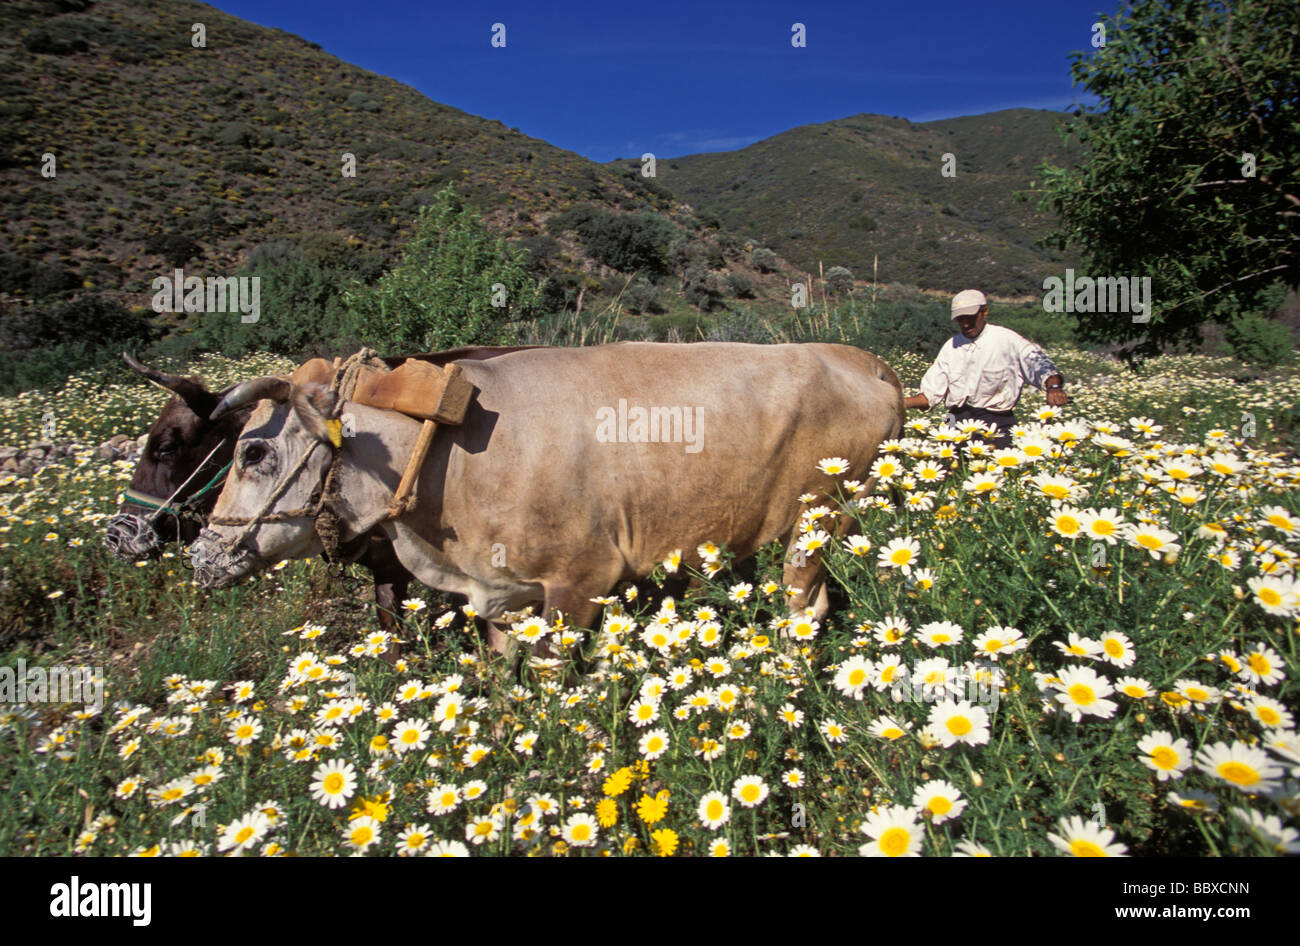 Farmer plowing with oxes Datca Turkey - Stock Image